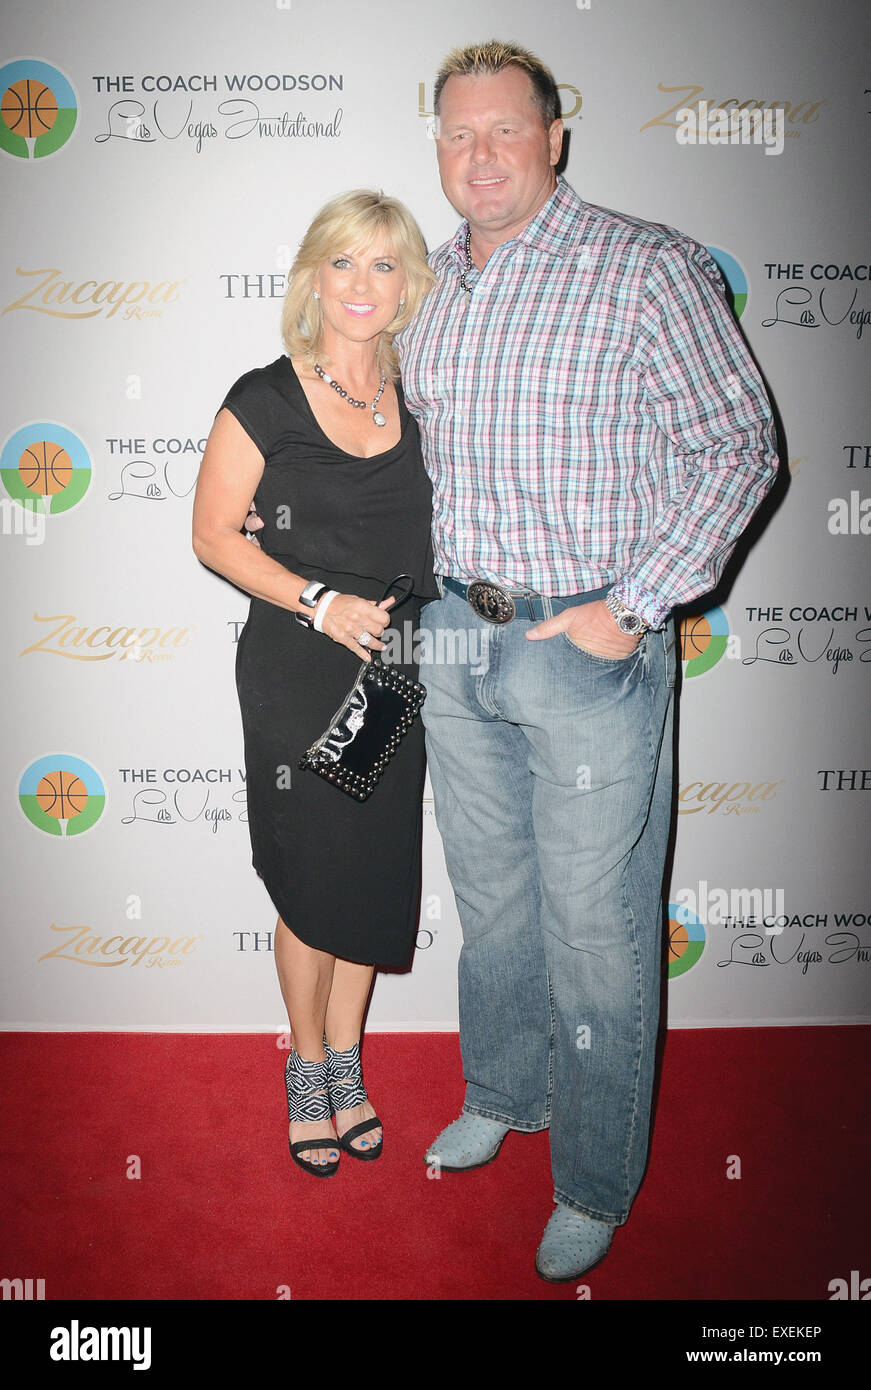 Roger Clemens Stock Photos & Roger Clemens Stock Images ...